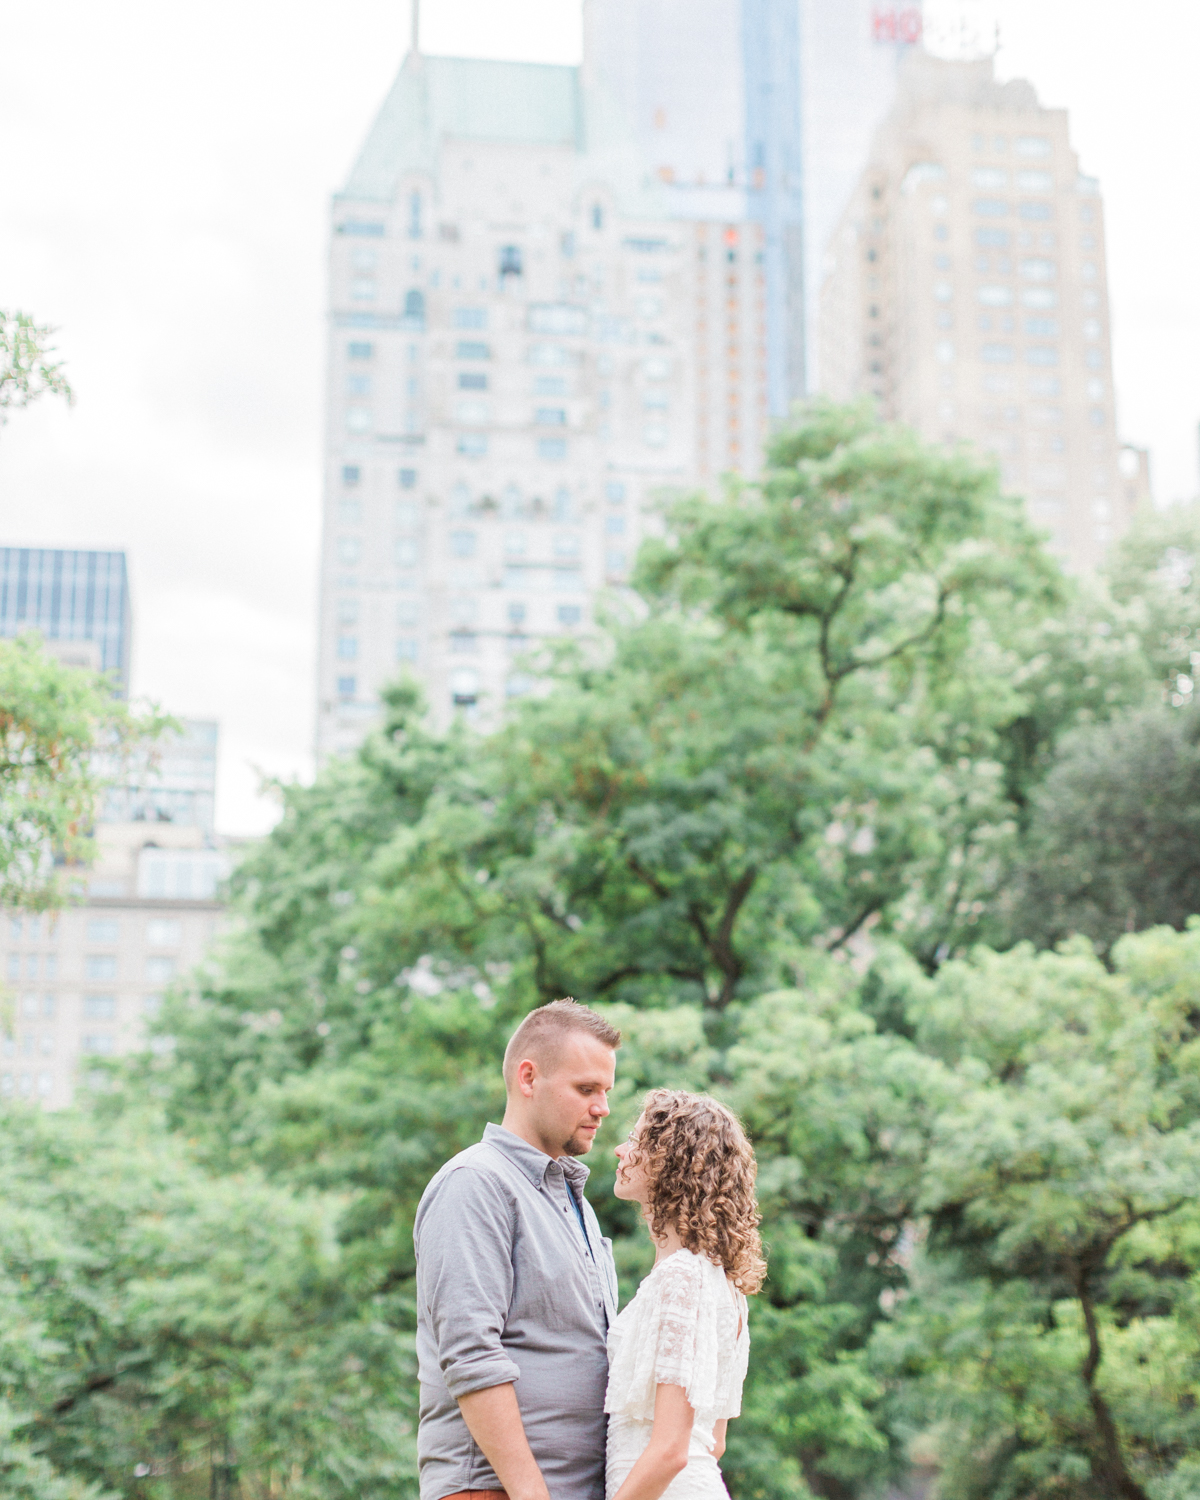 Calgary-Engagement-Photograoher-central-park-session-nyc-8.jpg